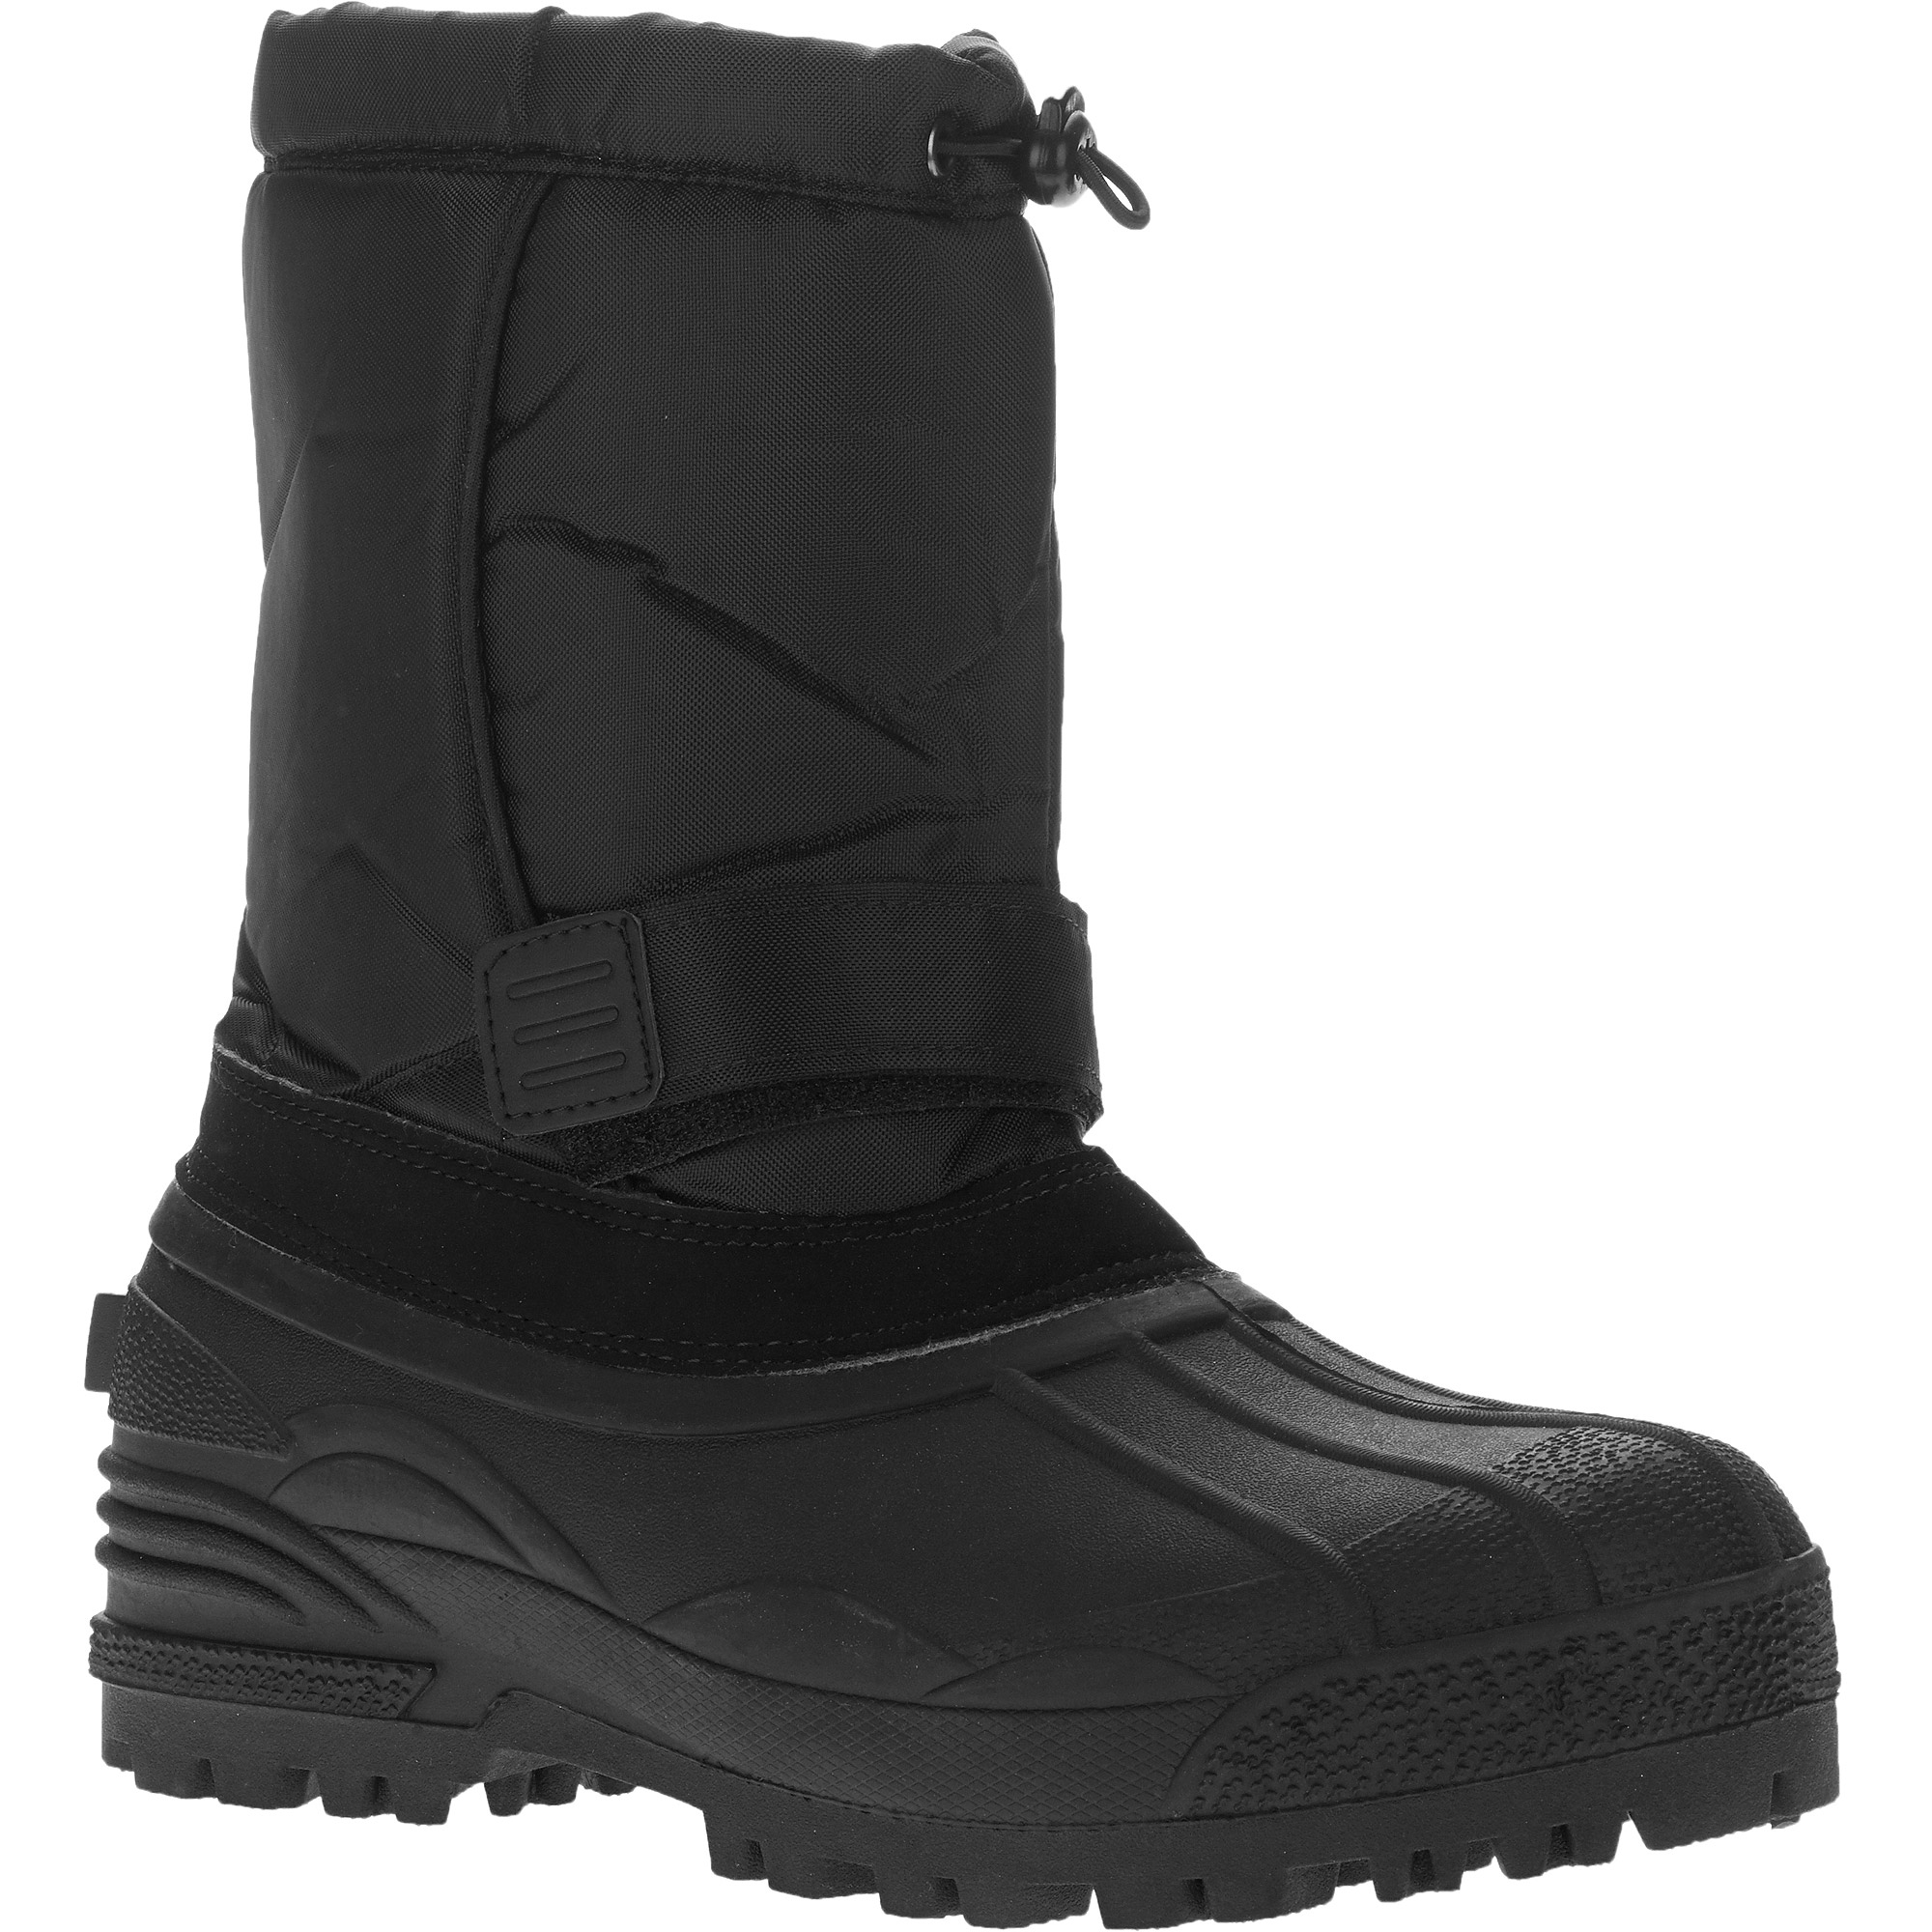 Snow Boots For Men Clearance Pgv0yrGv